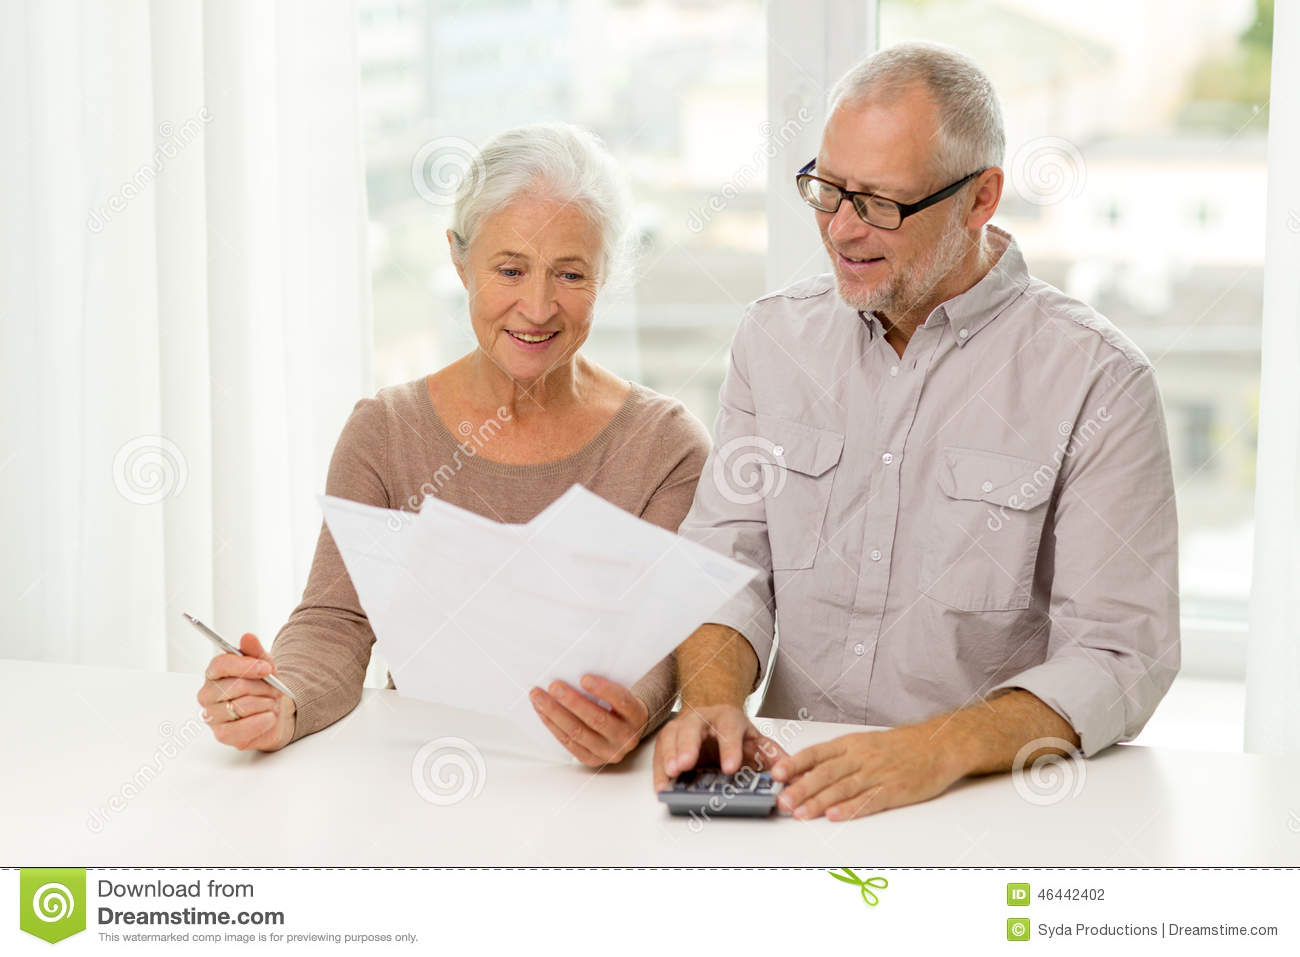 essays on aging parents Aging with a developmental disability social work essay print this role from aging parents the essay published on the uk essays website then please.